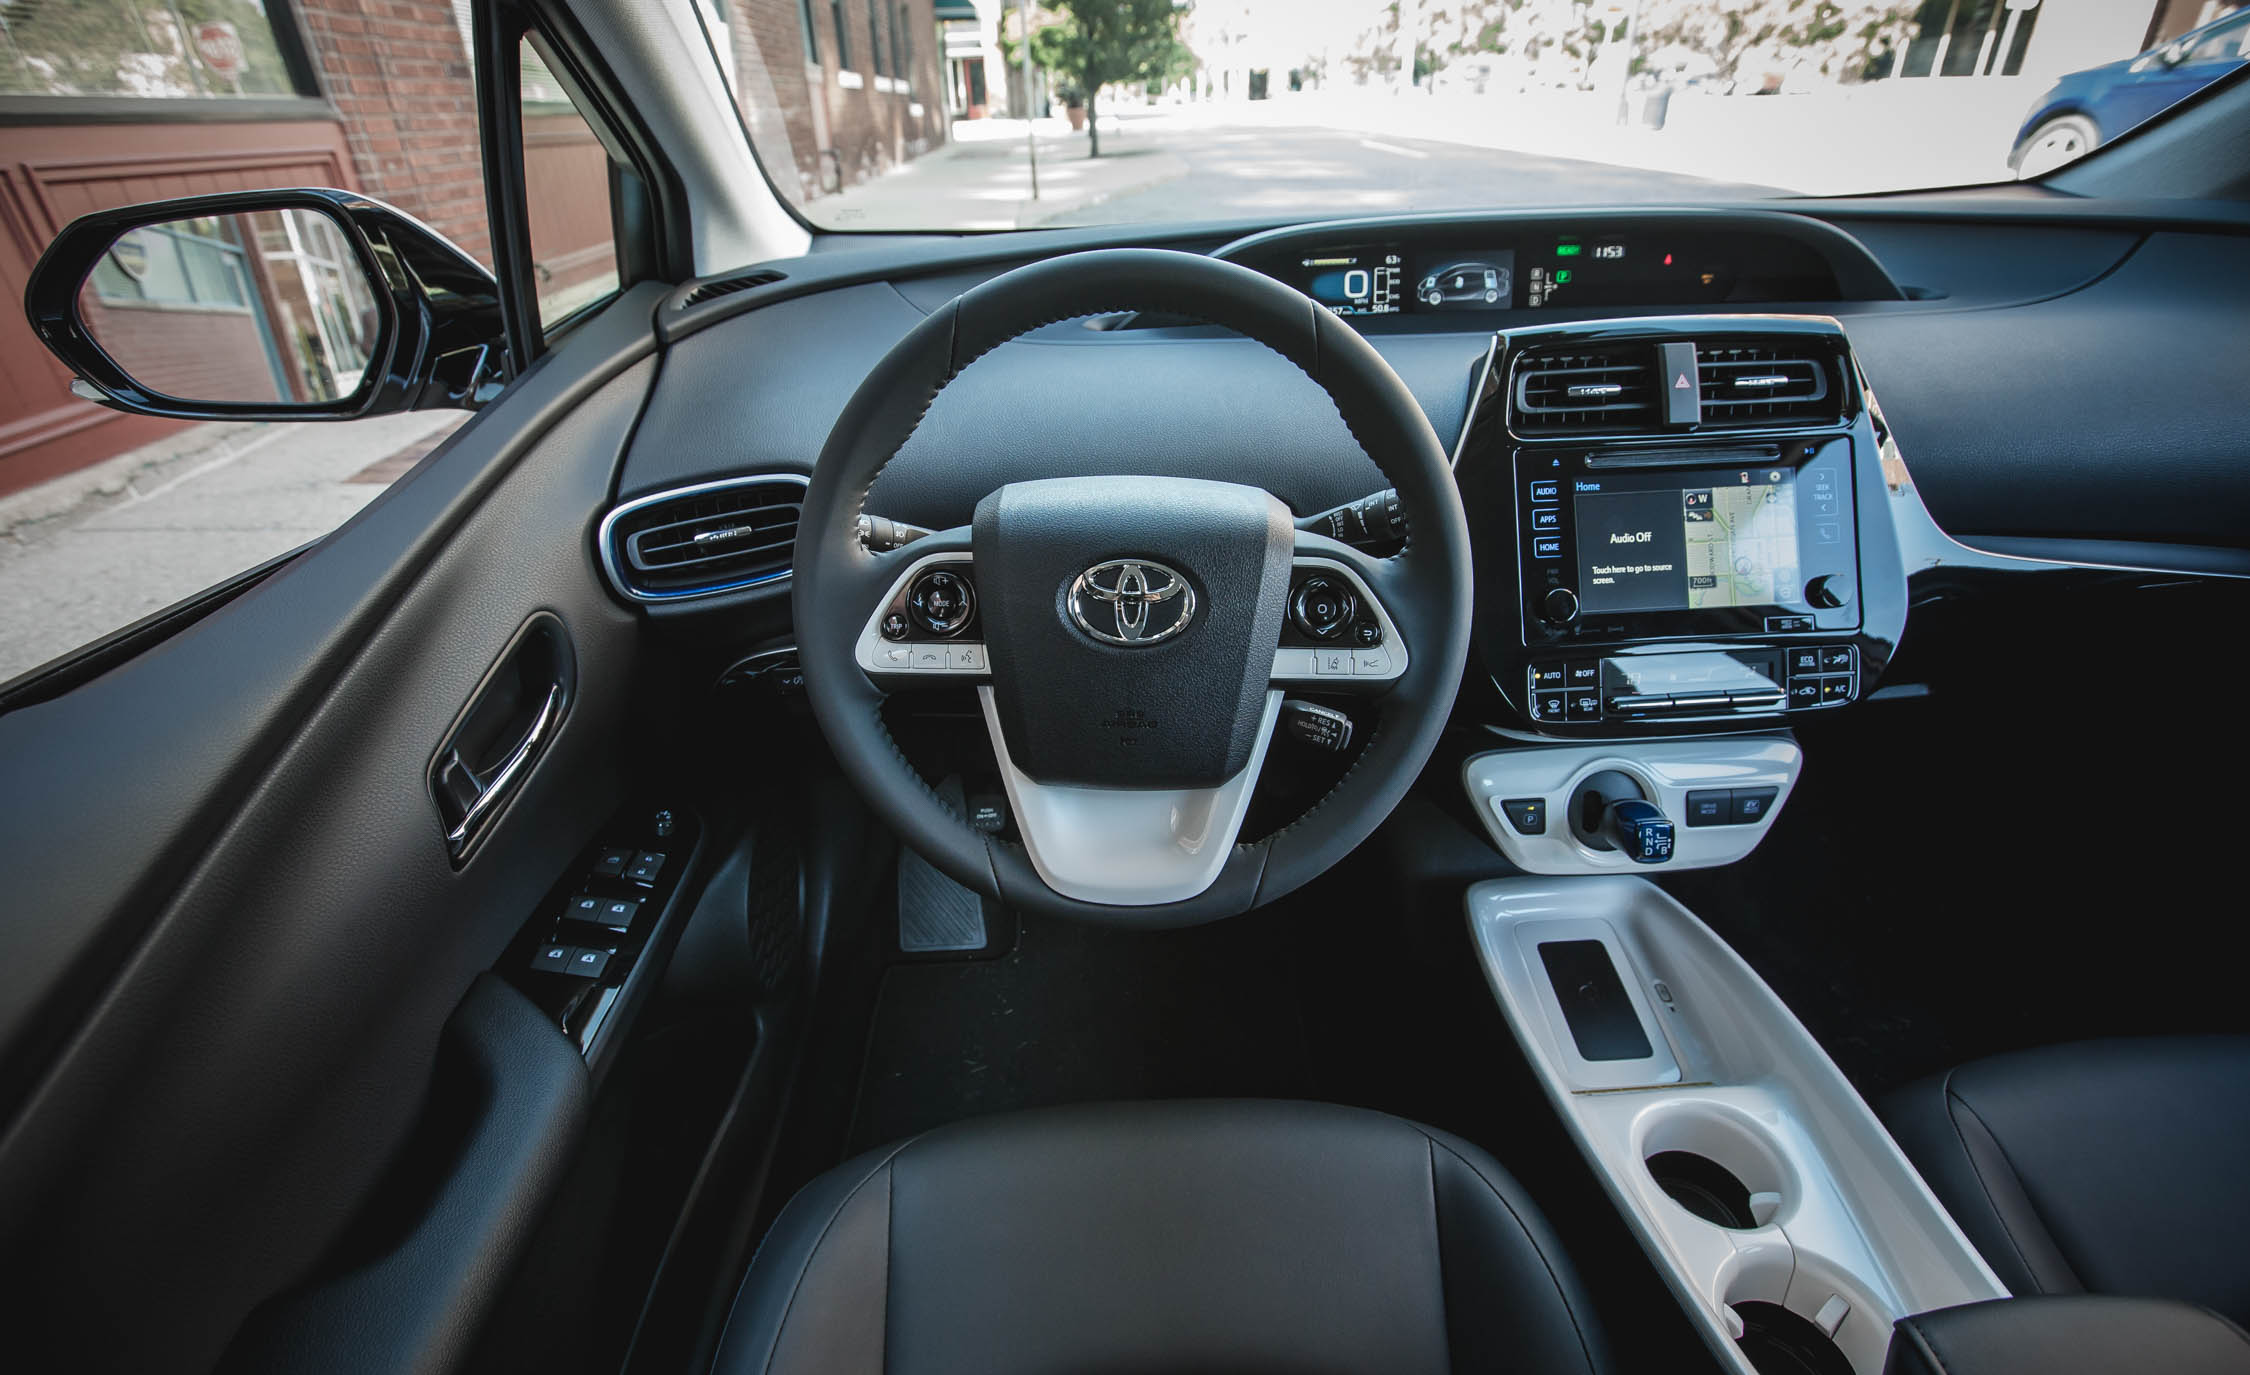 2017 Toyota Prius Interior Cockpit And Dash (Photo 41 of 64)